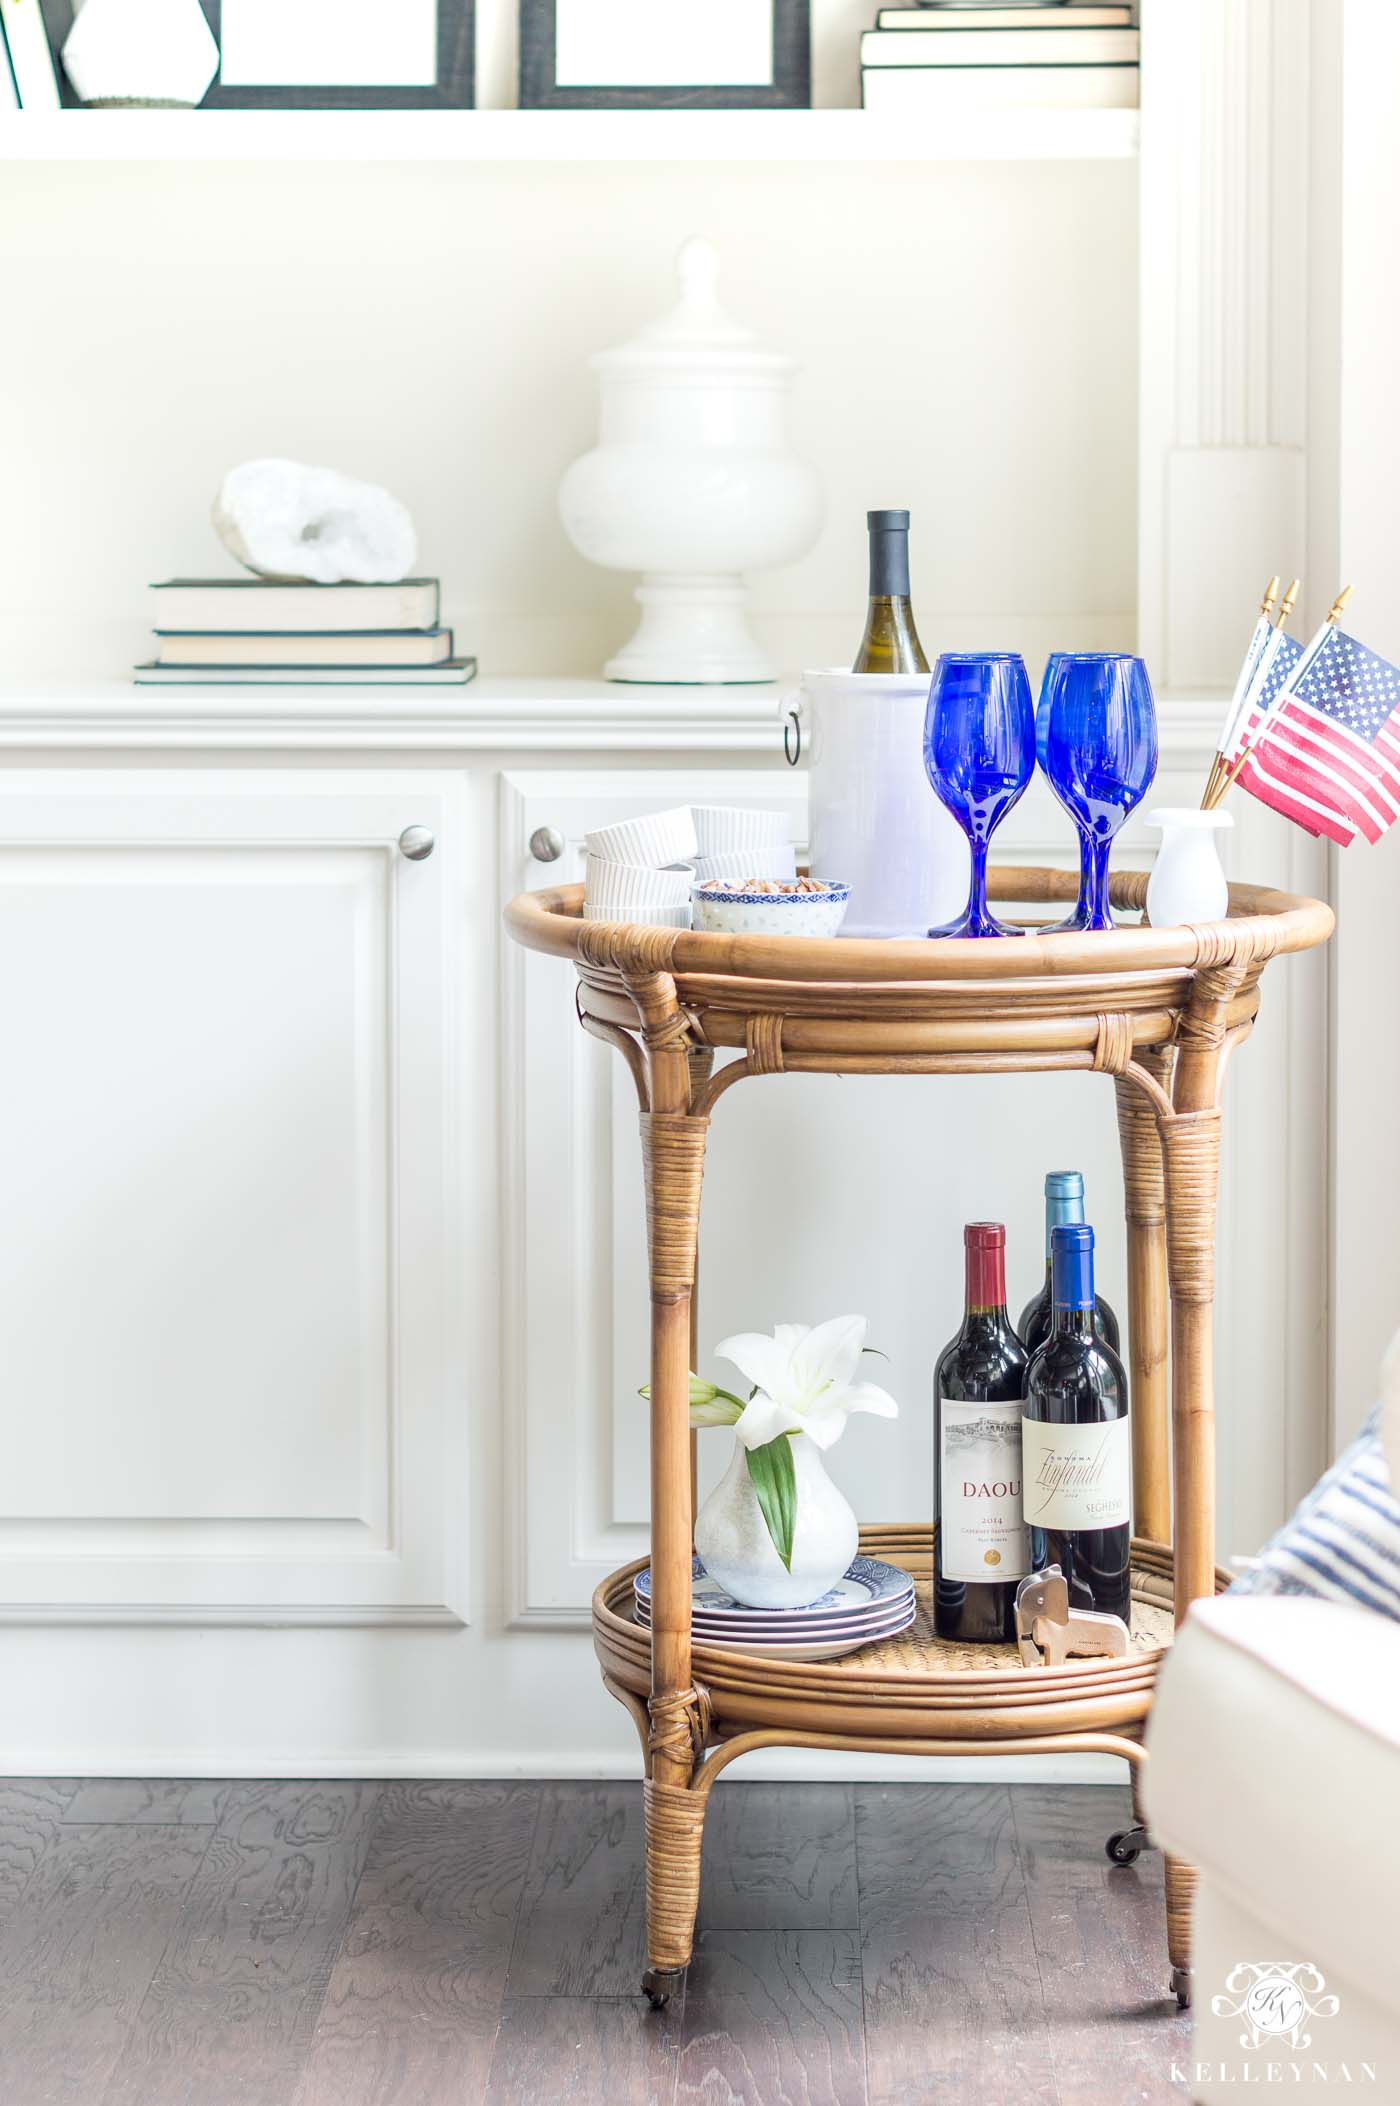 Rattan Bar Cart for the 4th of July